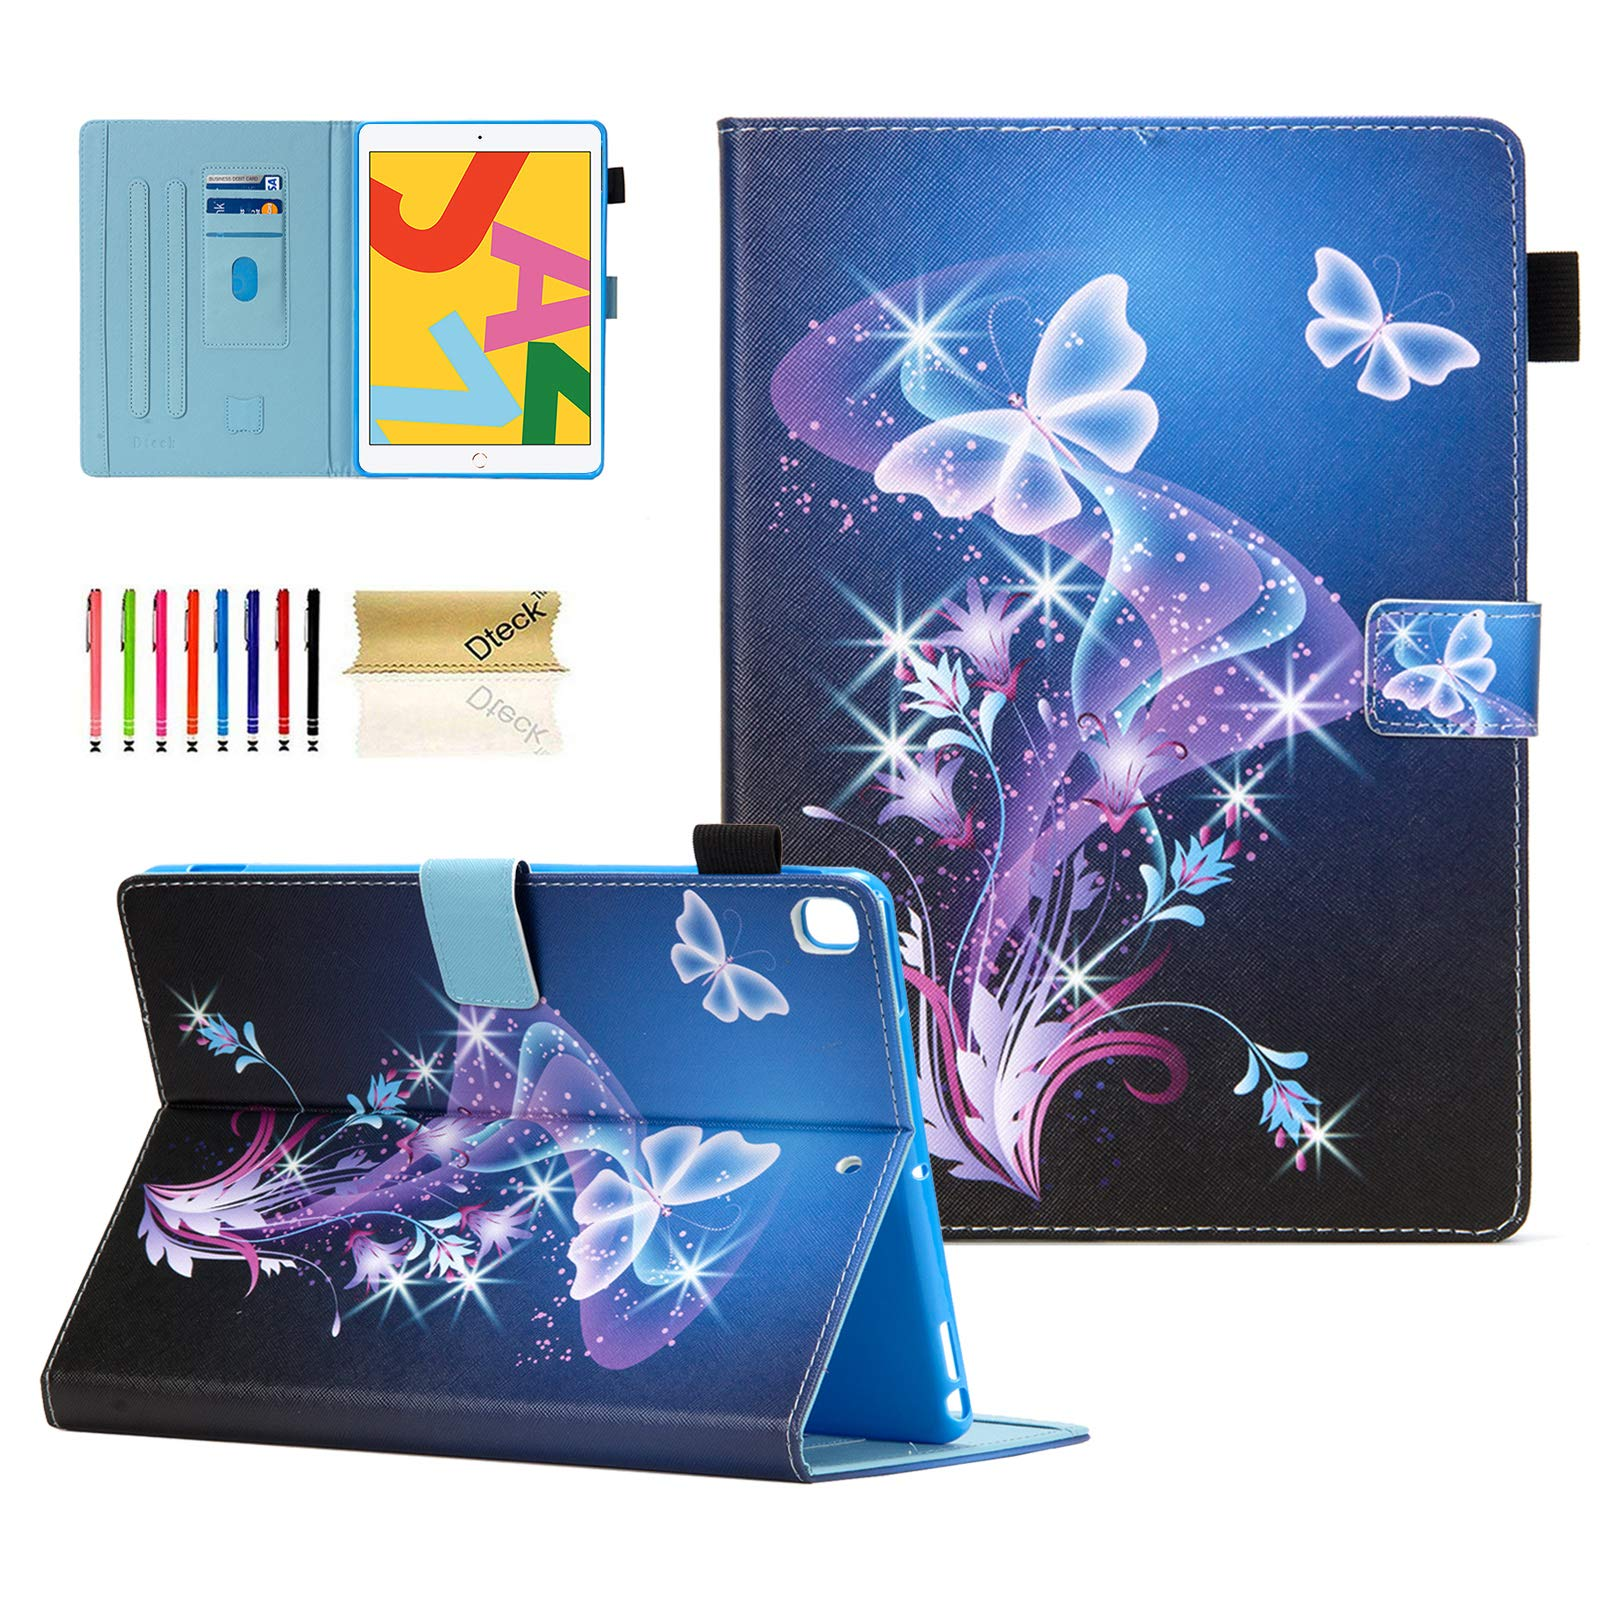 Dteck Case for iPad 10.2 2019 7th Generation - Slim Fit Premium PU Leather Folding Stand Smart Shockproof Cover with Pencil Holder, Auto Wake/Sleep, Wallet Pocket, Purple Butterfly